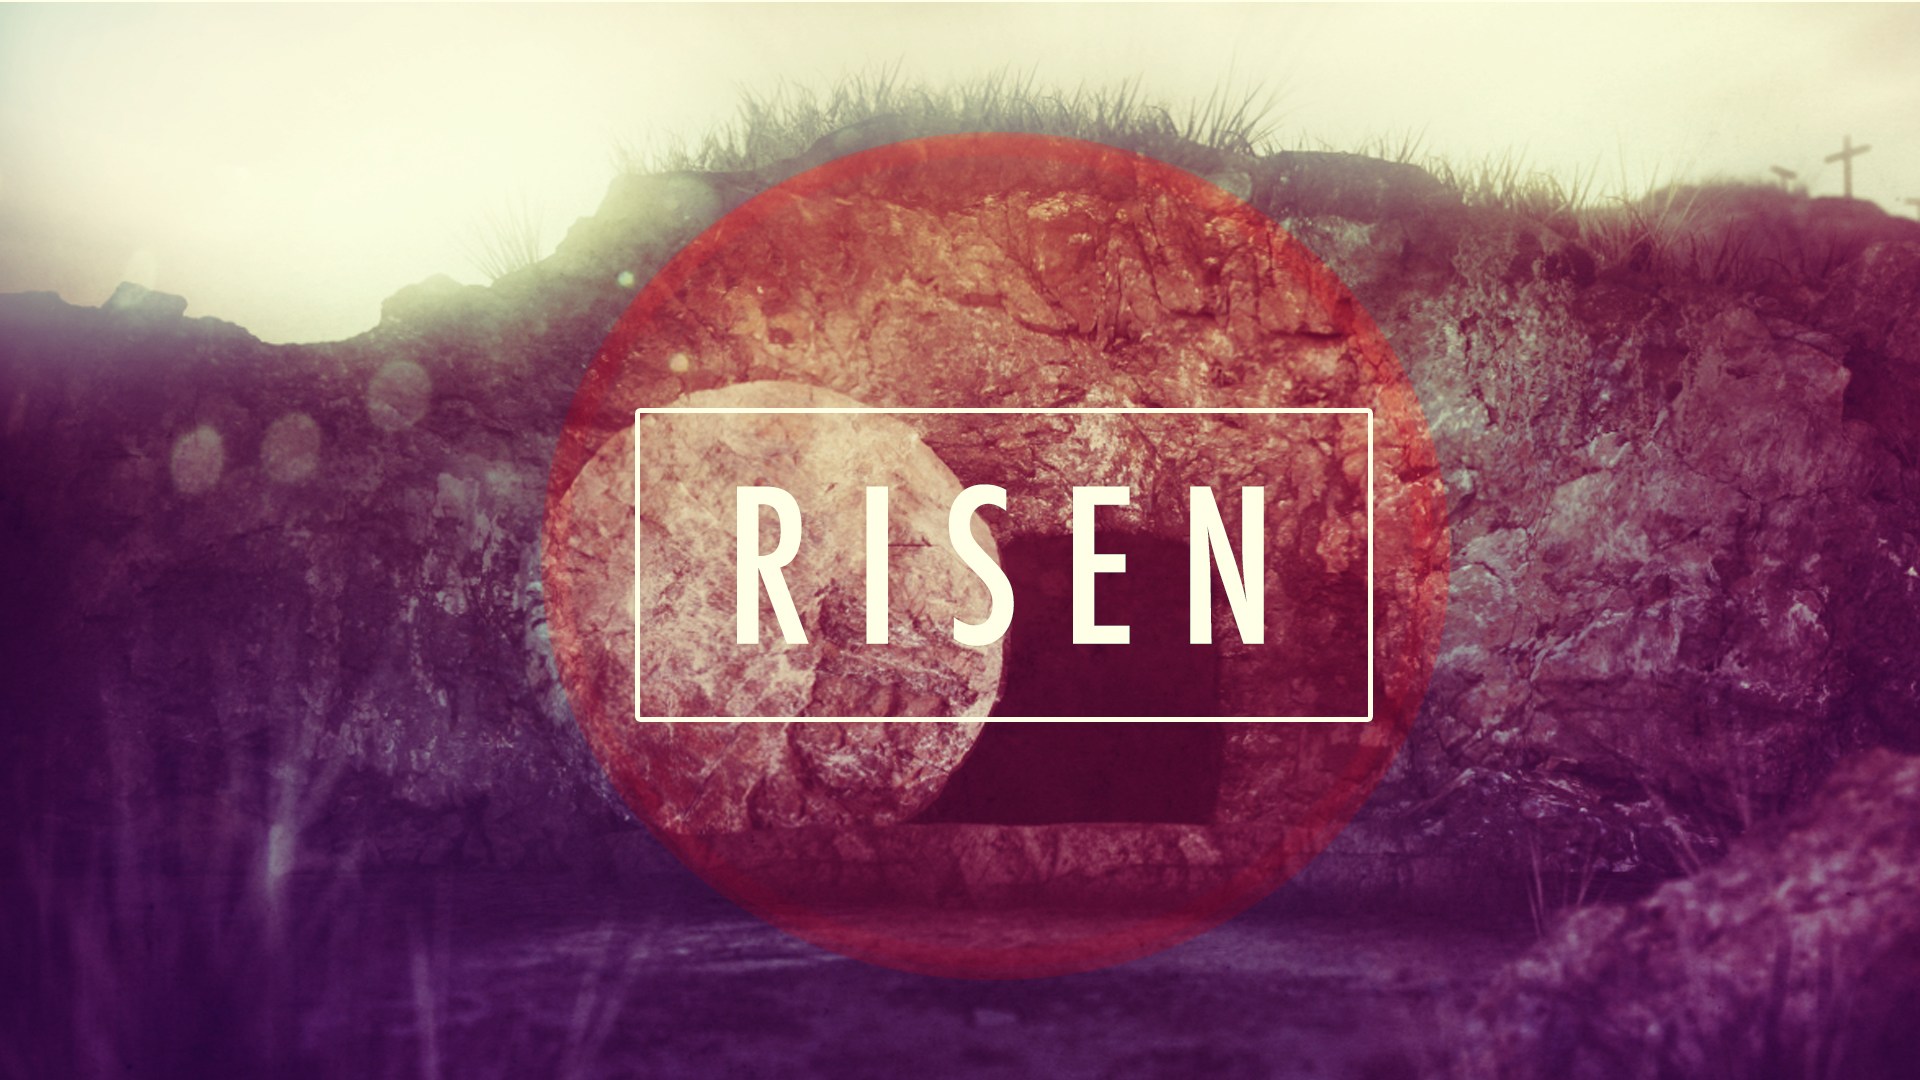 Christ is risen, alleluia!' | Irish Catholic Bishops' Conference